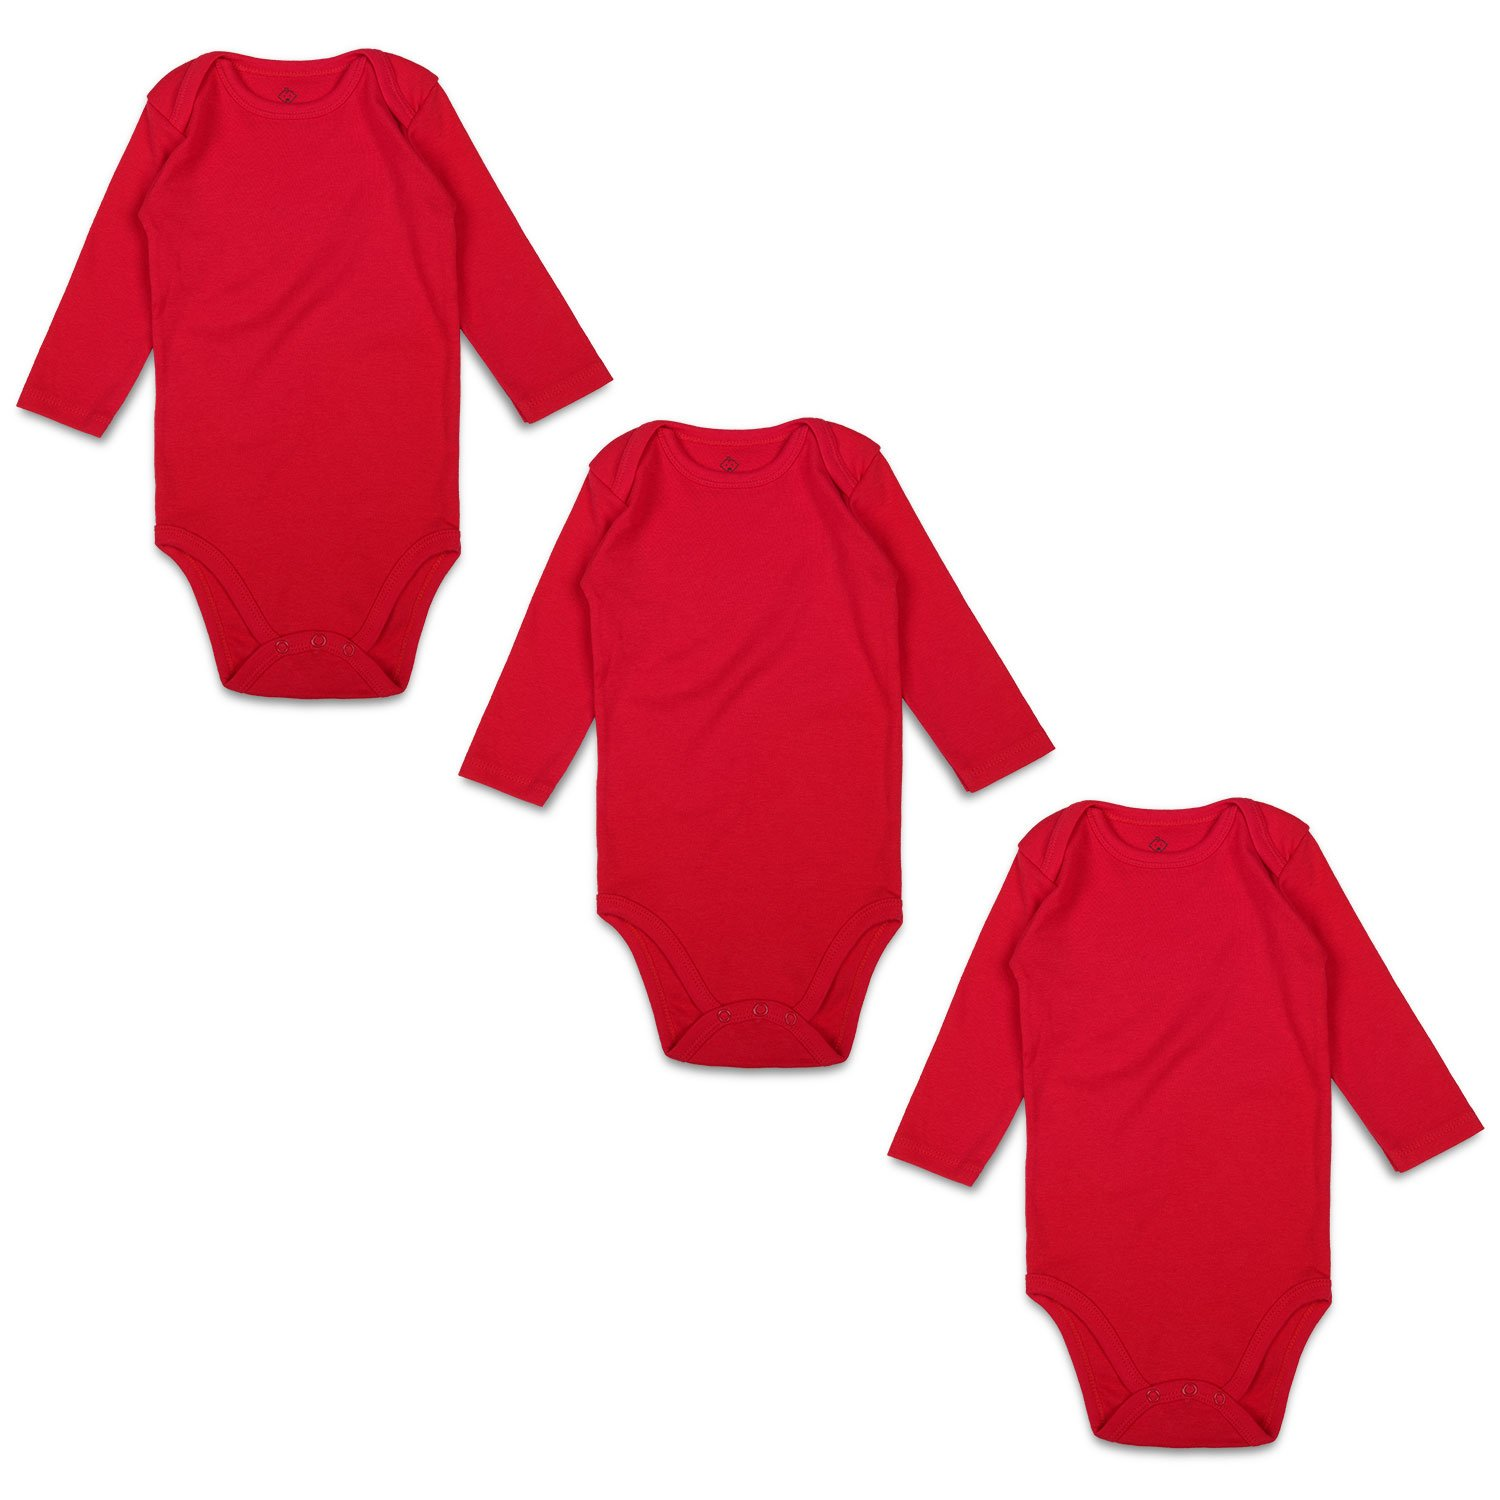 OPAWO Baby Bodysuits Long Sleeve for Unisex Boys Girls 3 Pack (0-3 Months, Red)